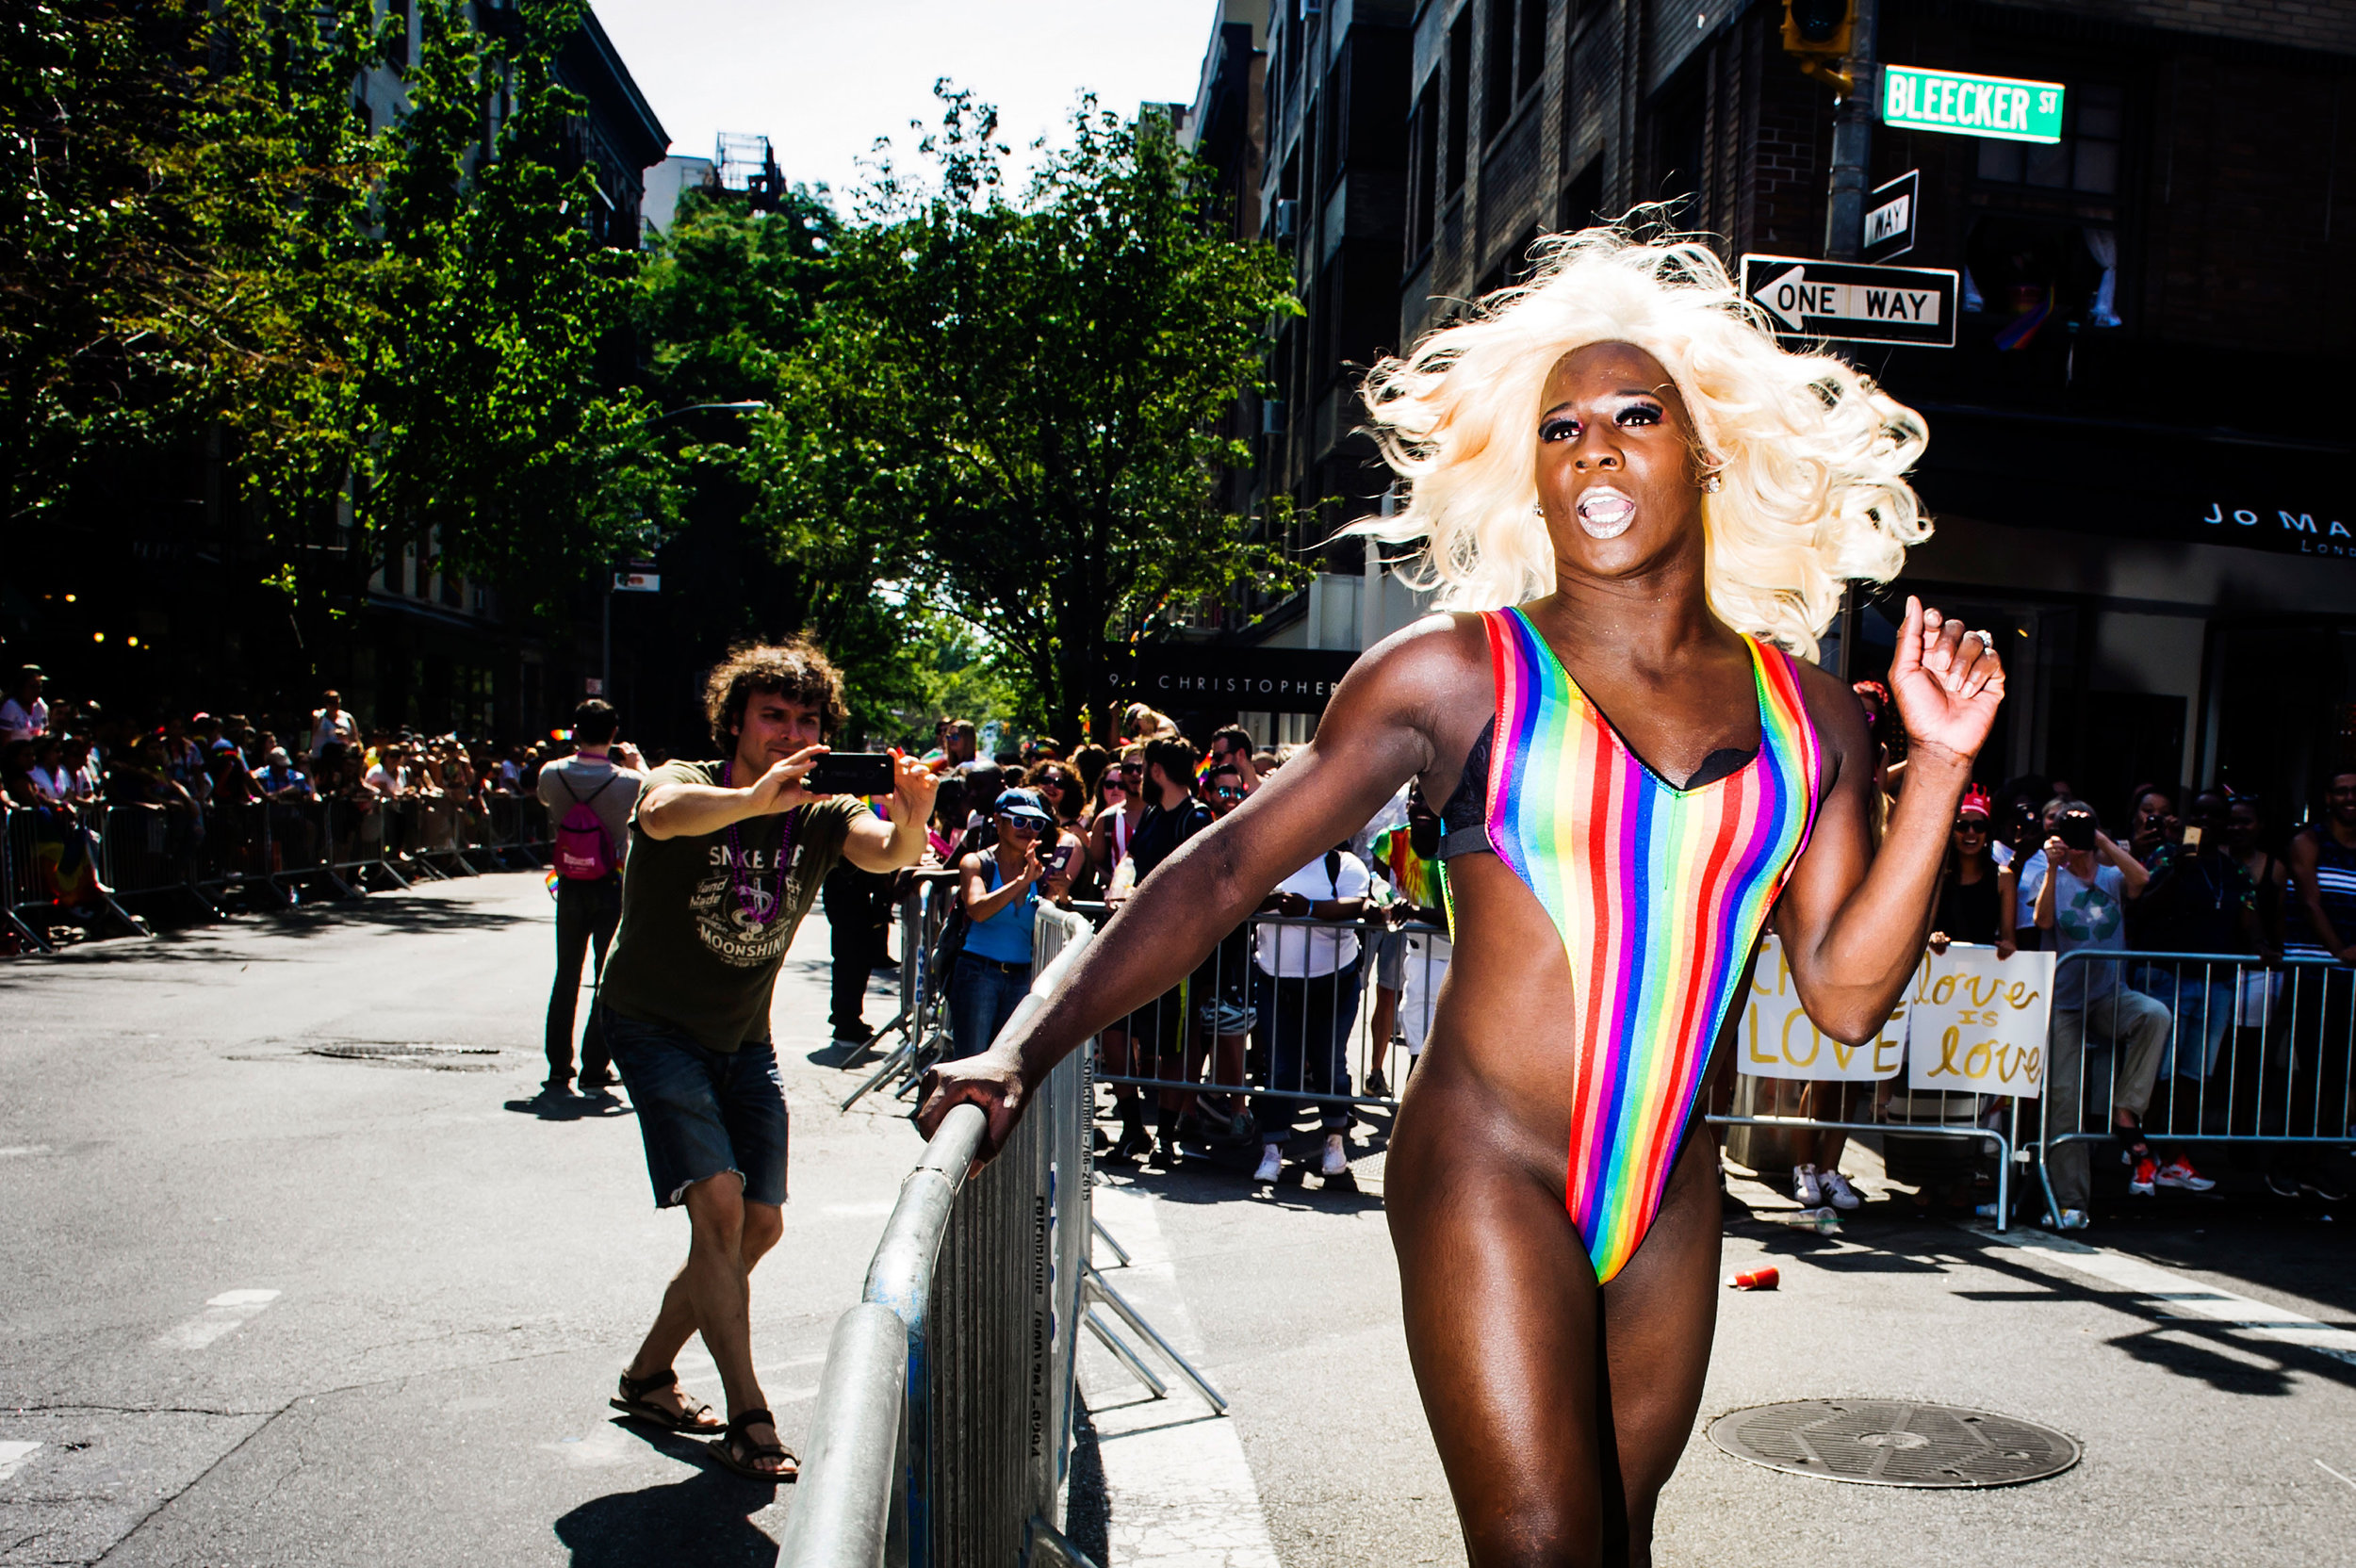 pride march rainbow bodysuit.jpg